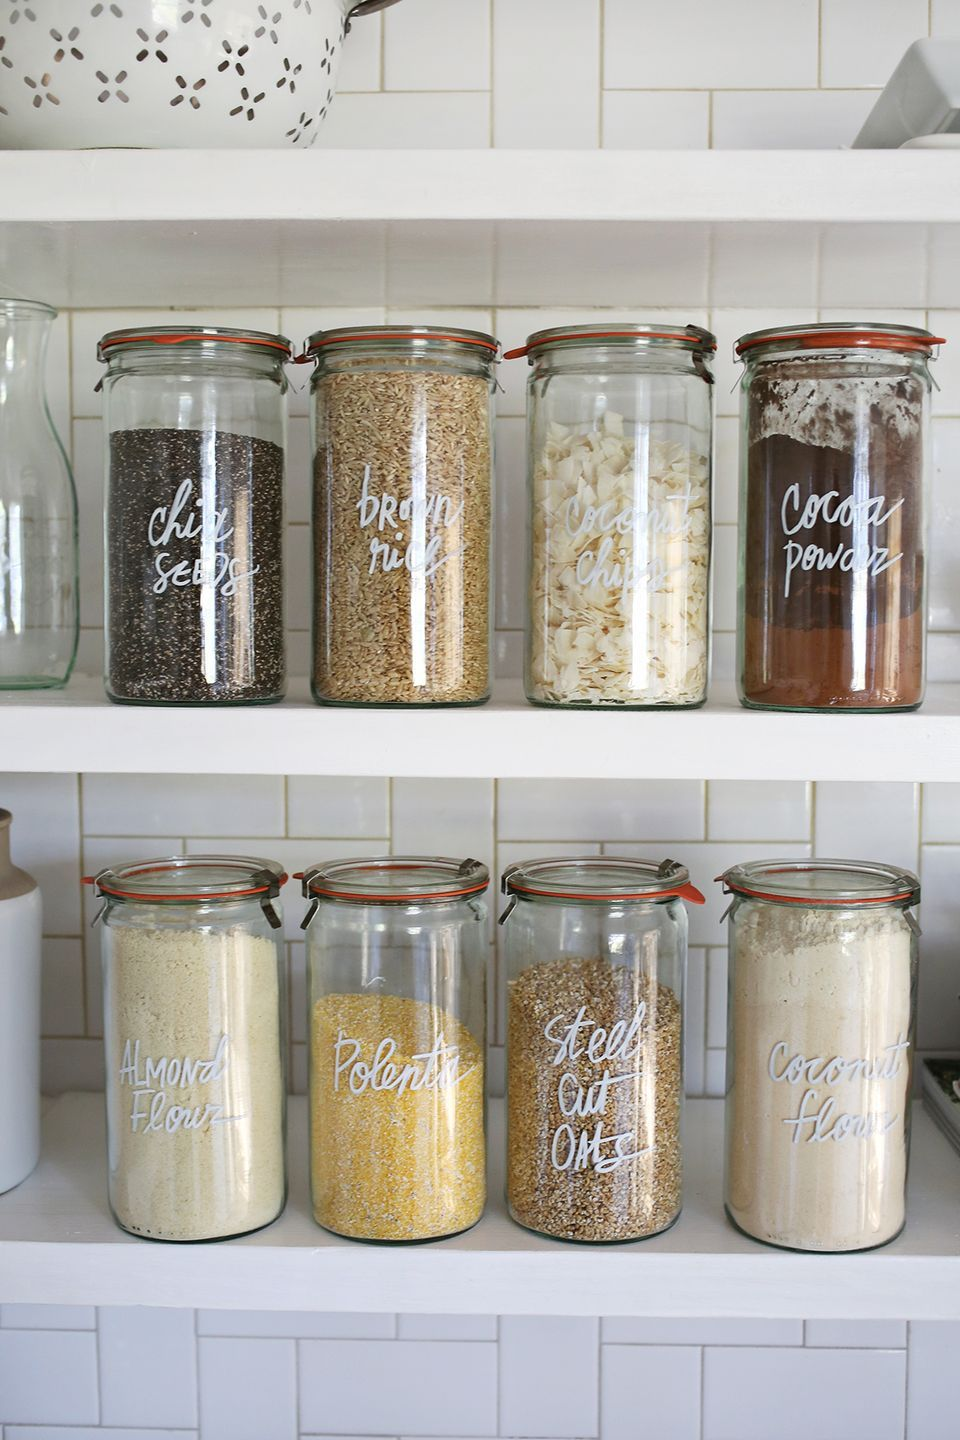 50 projects you can do yourself to update your kitchen despensa diy pantry storage jars solutioingenieria Images